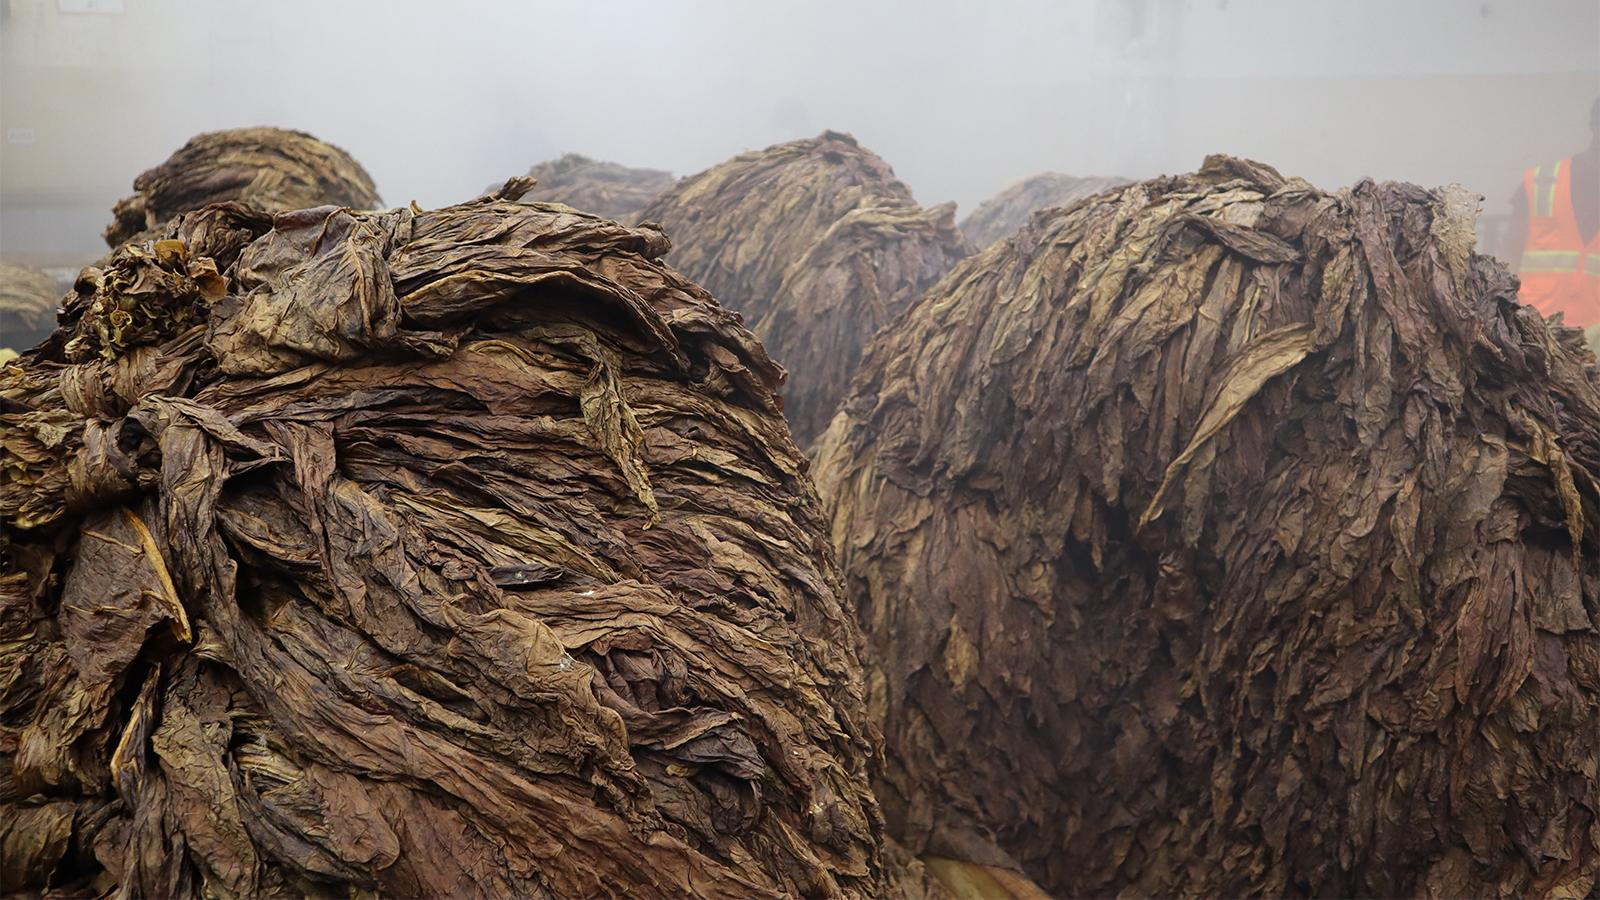 Piles of tobacco inside Tabacalera de Garcia in the Dominican.